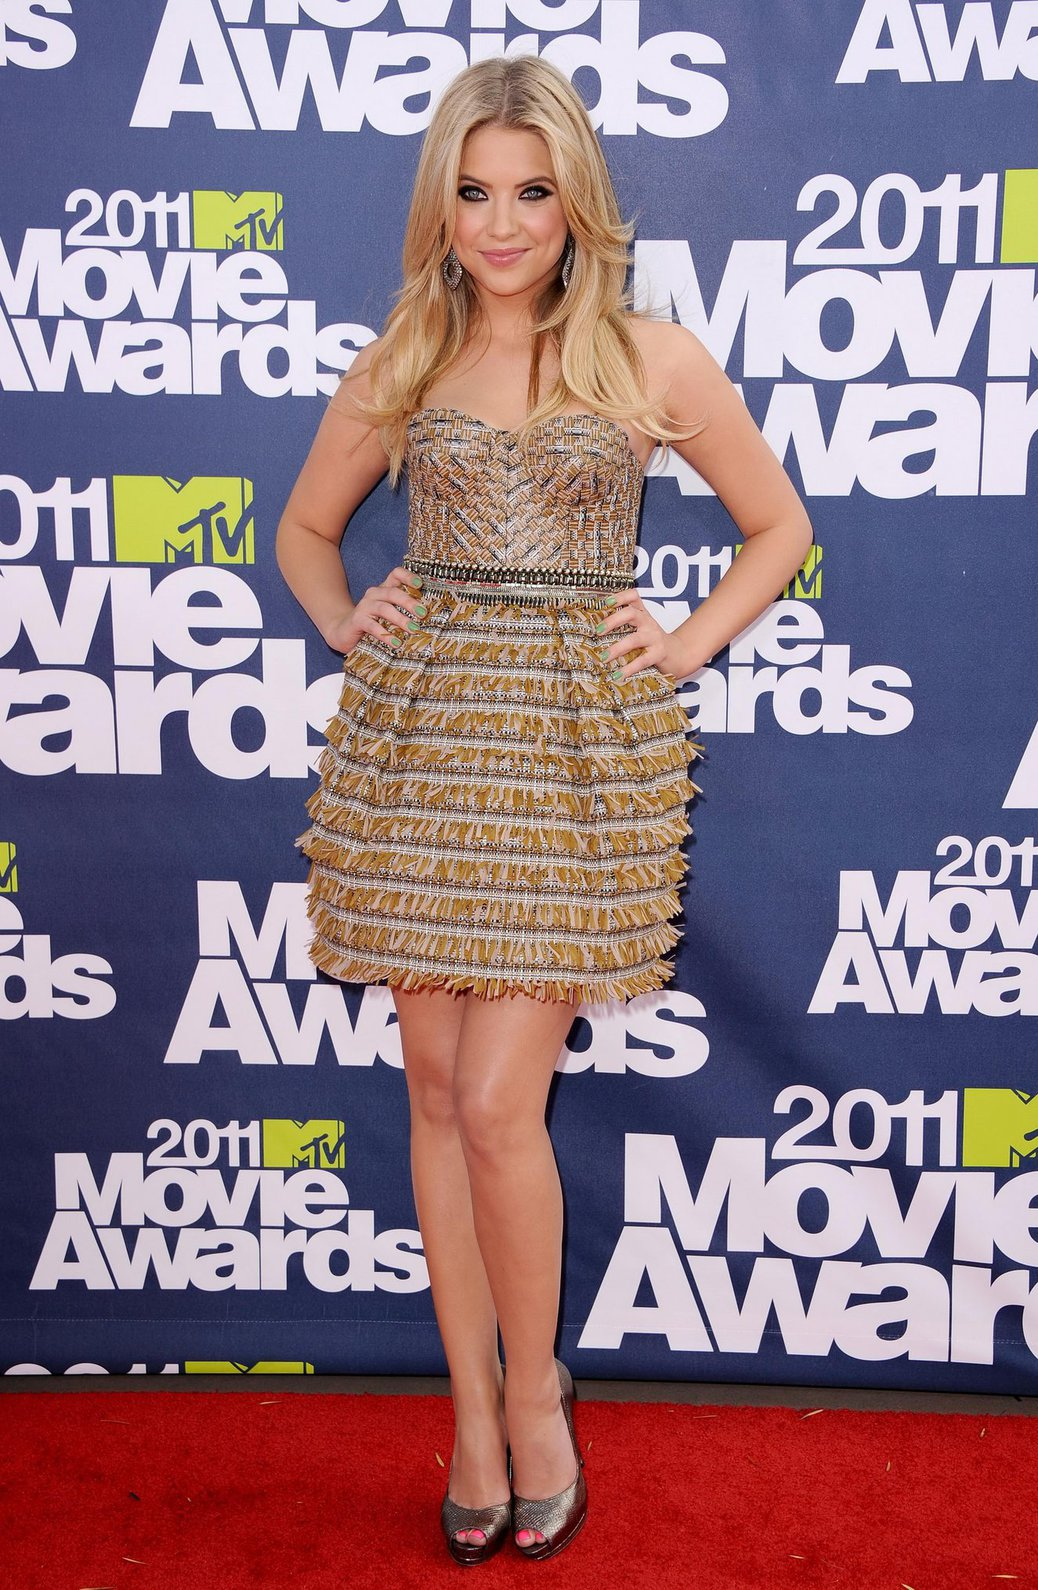 Ashley Benson 2011 MTV Movie Awards in Los Angeles on June 5, 2011